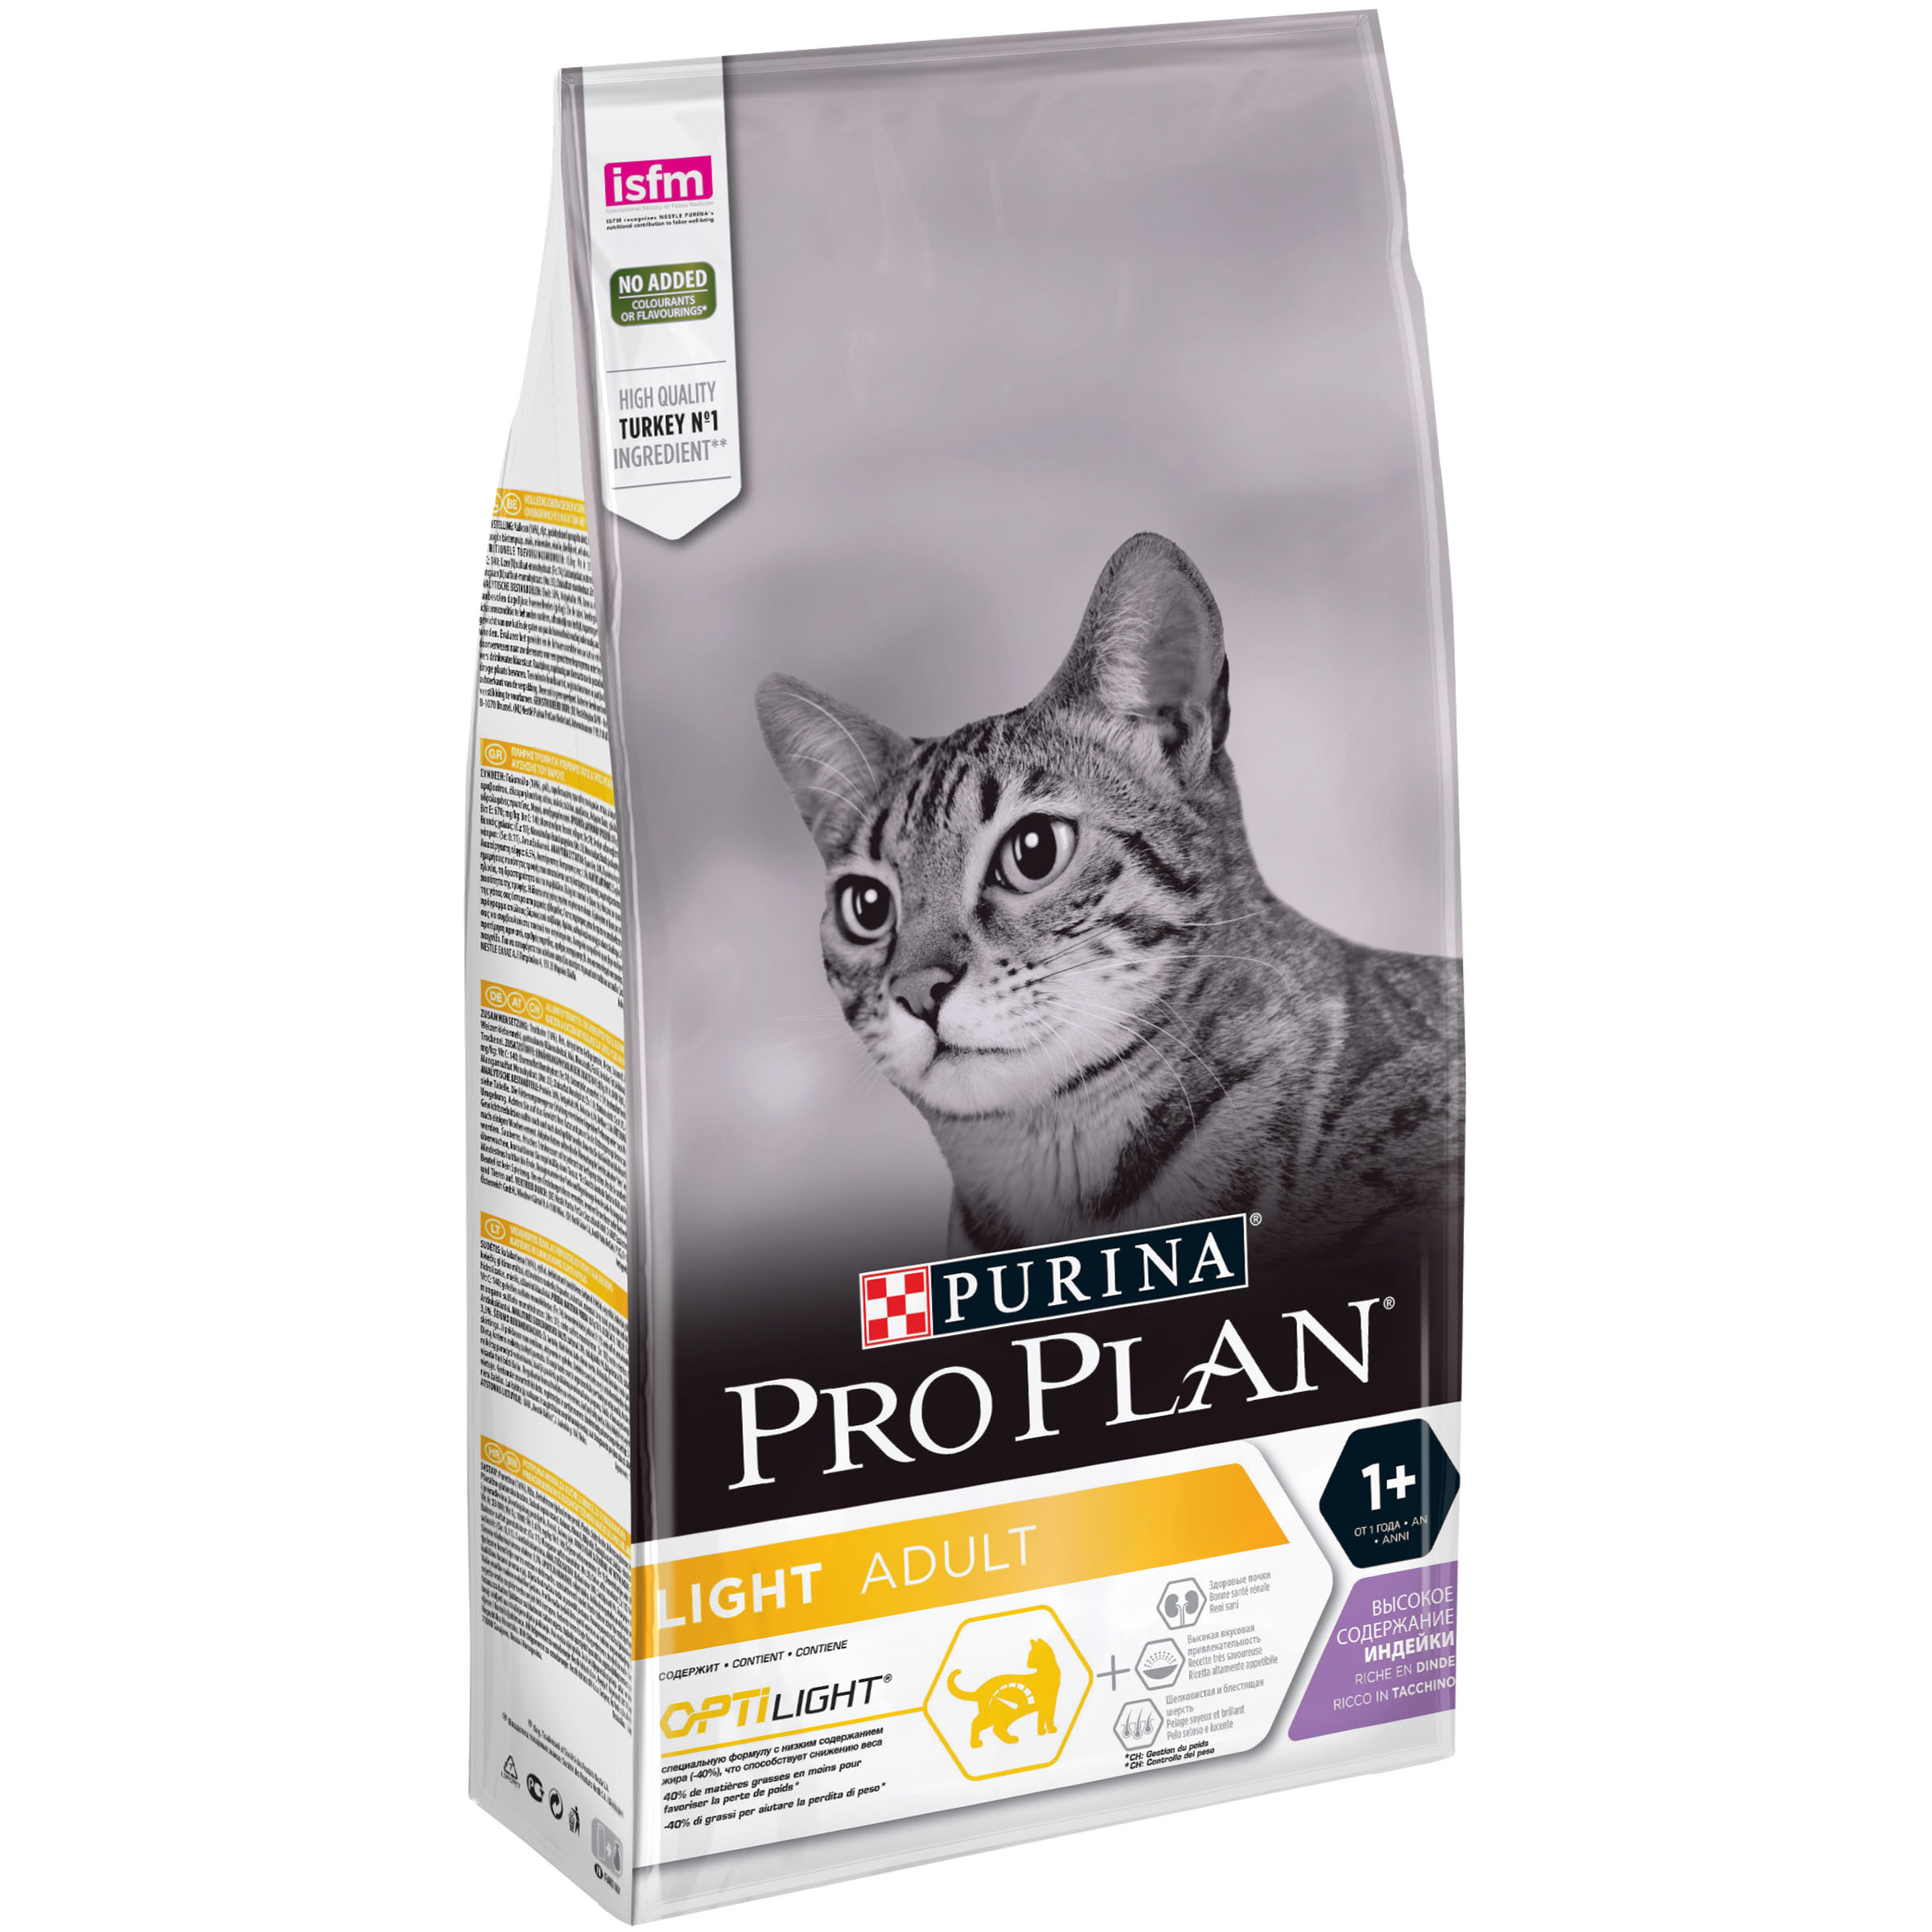 Pro Plan dry food for cats with overweight, with turkey, Package 1.5 kg 2oz stainless steel meat marinade injector flavor bbq turkey pork syinge with liquid minced marinade needles